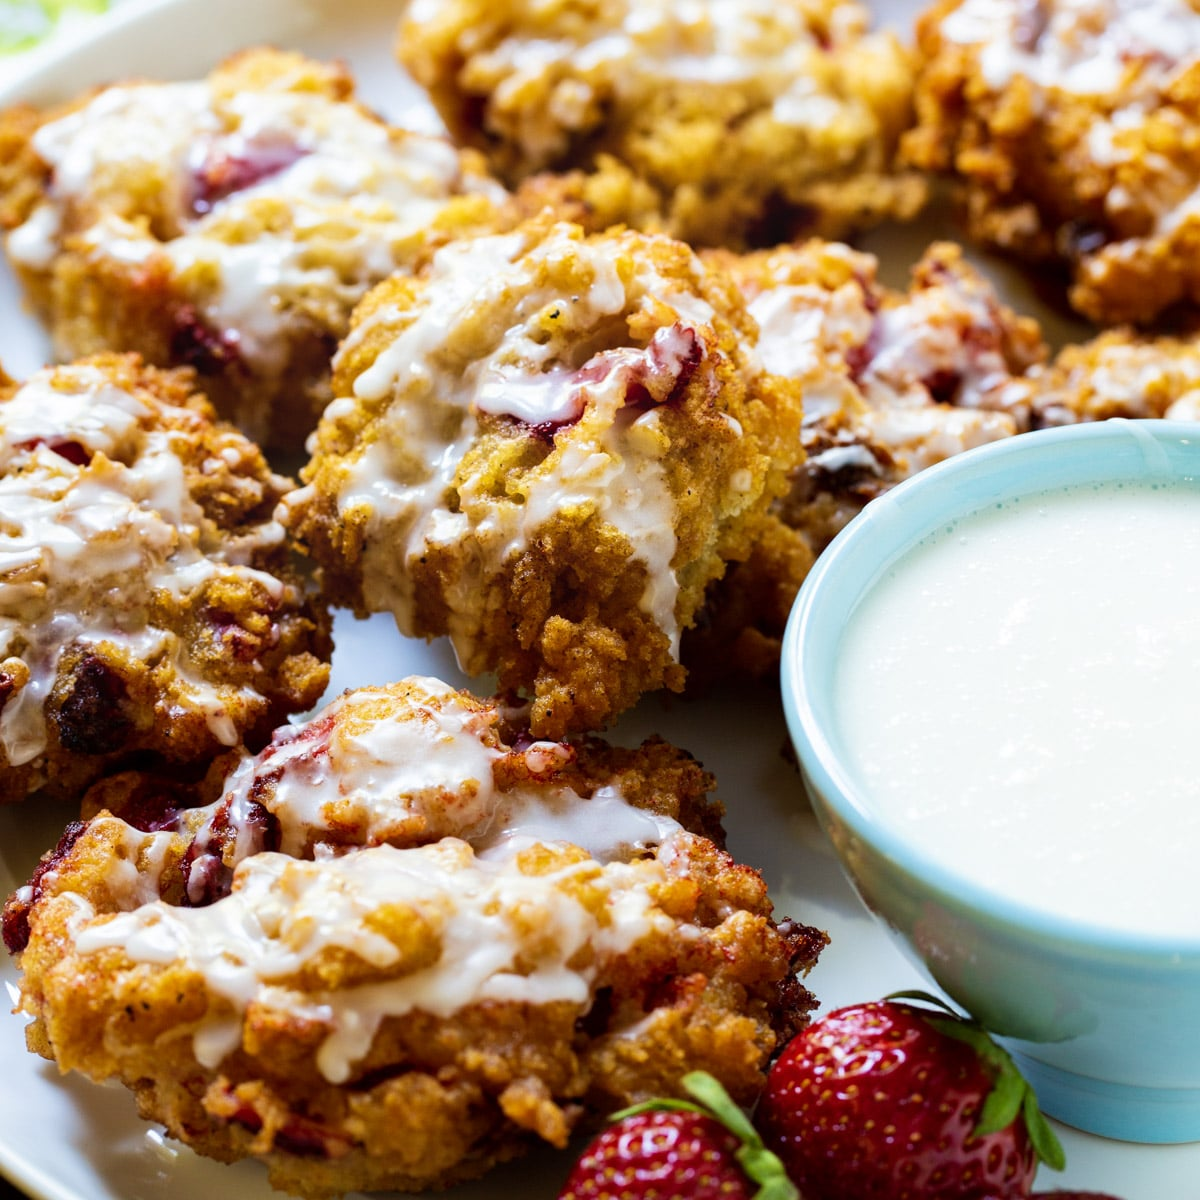 Glazed Strawberry Fritters on a plate with bowl of glaze.